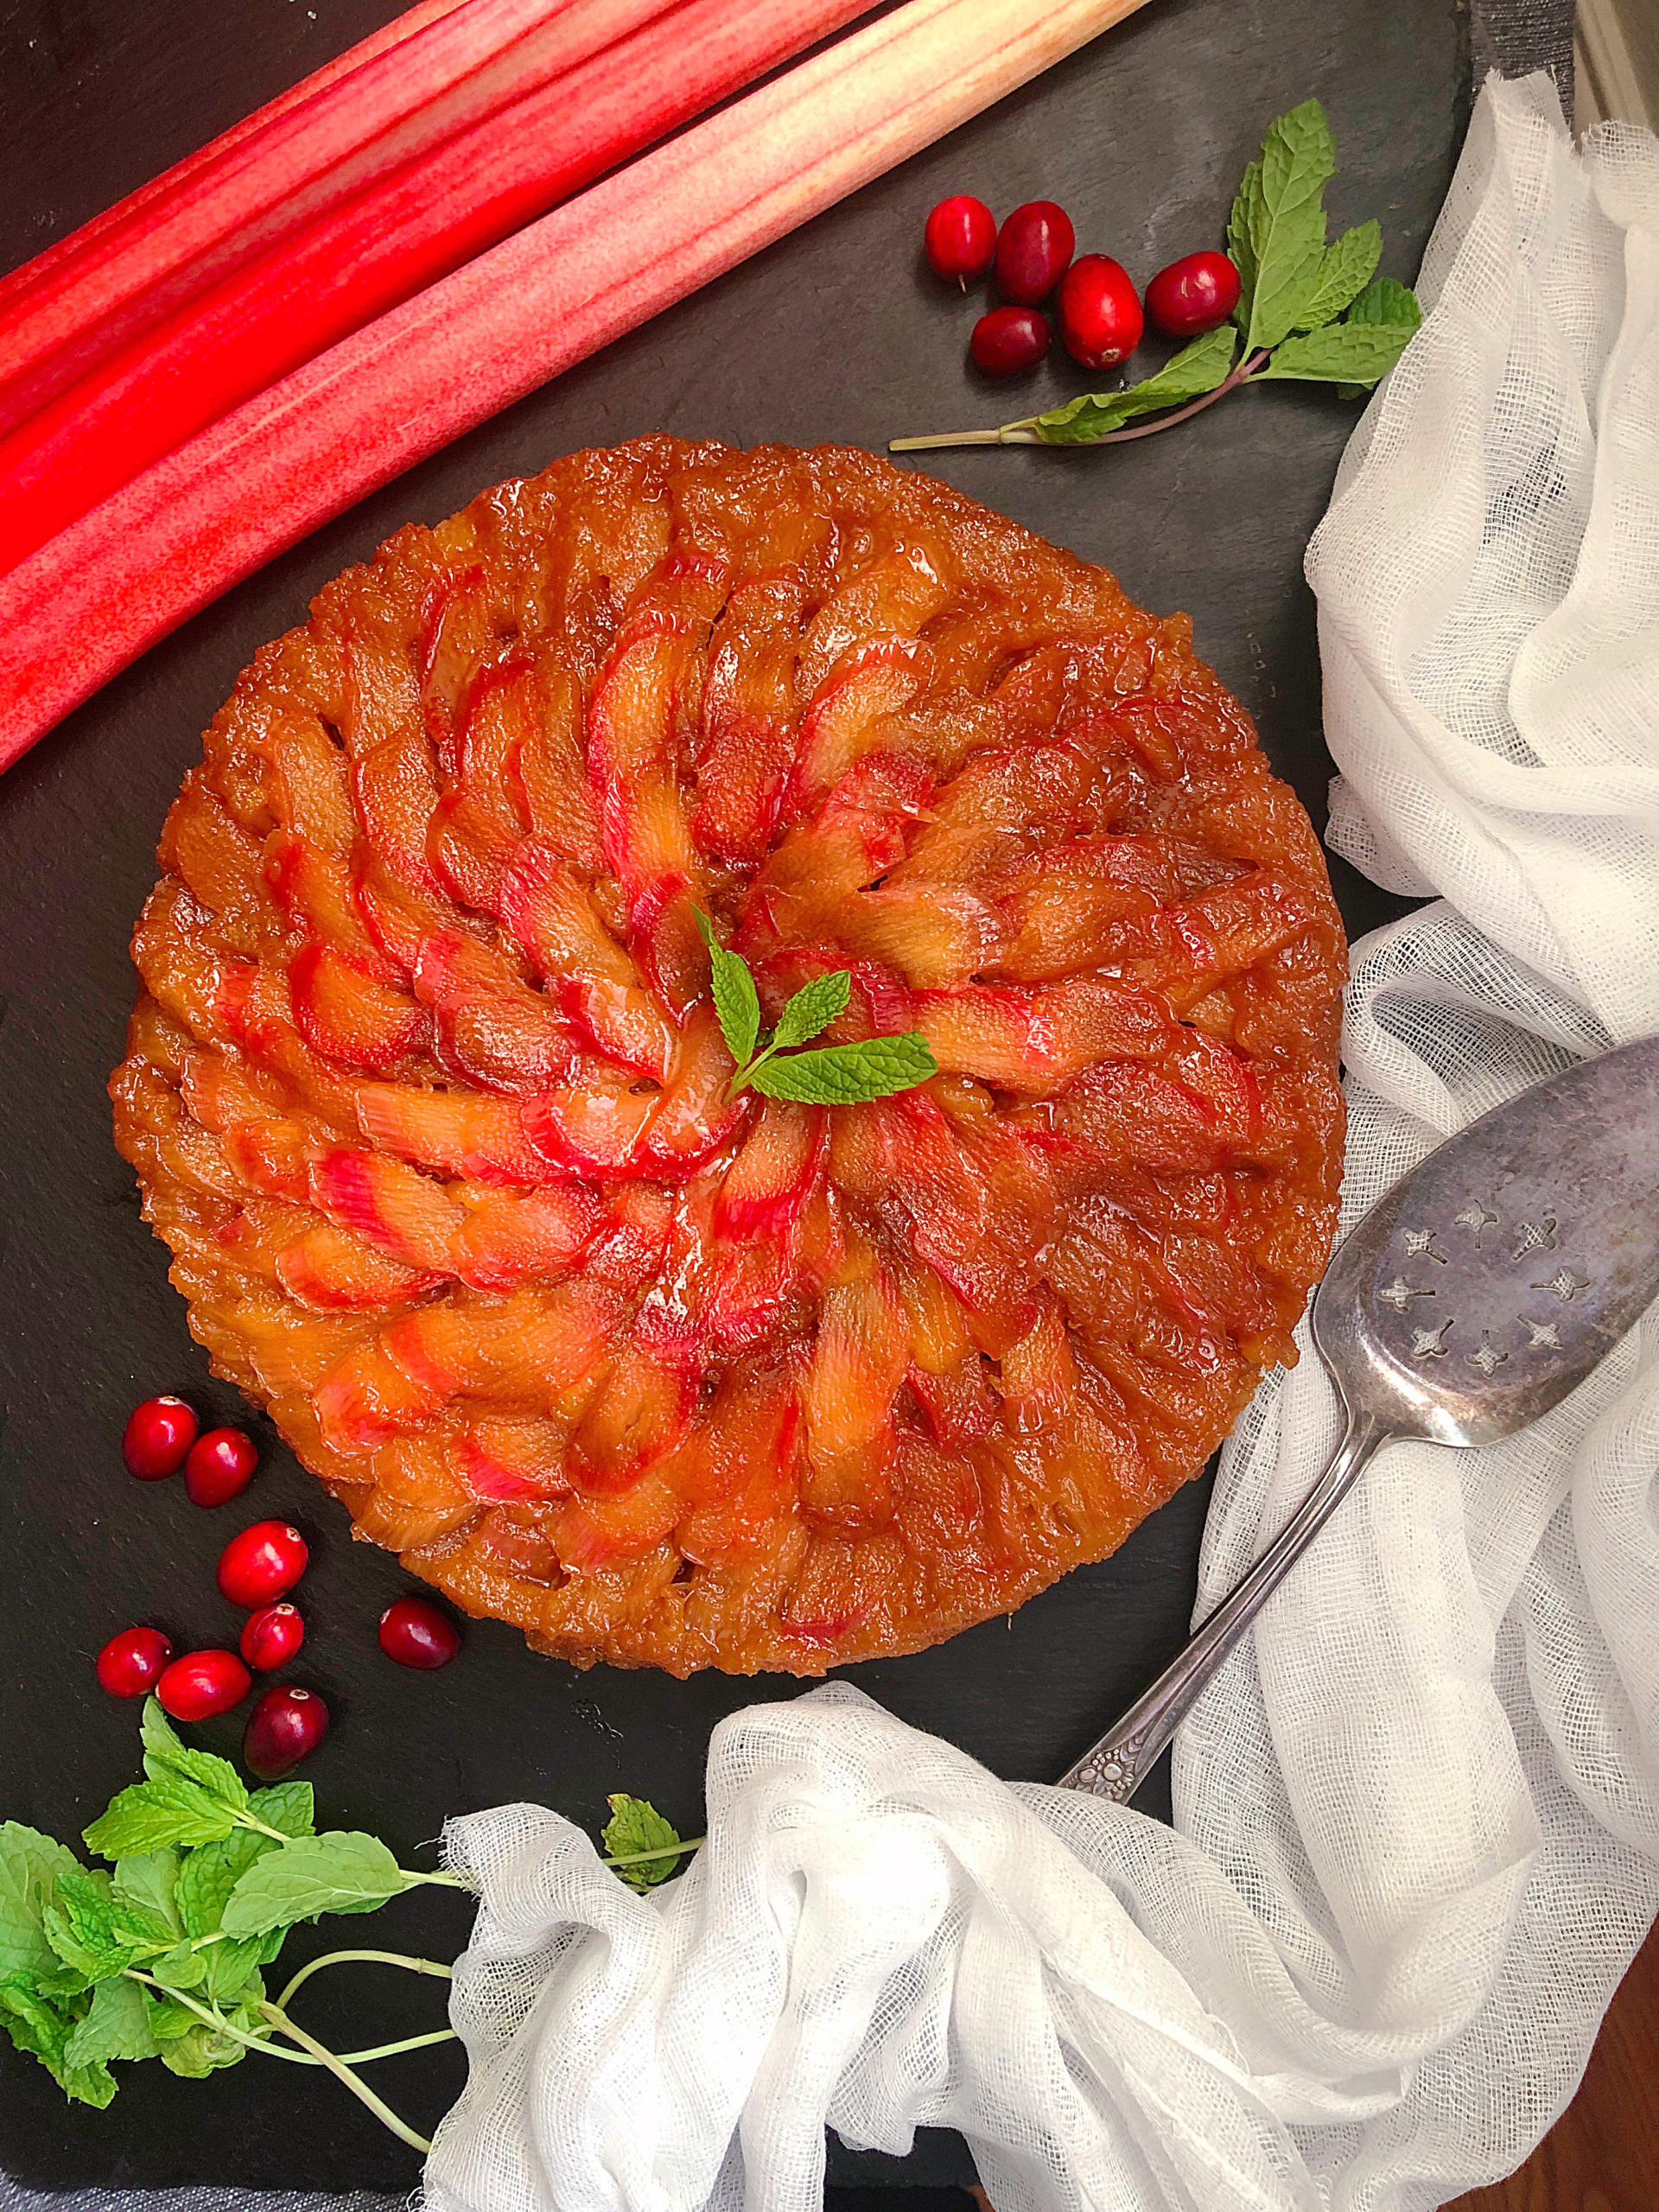 Rhubarb Upside Down Cake Recipe Jolly Tomato